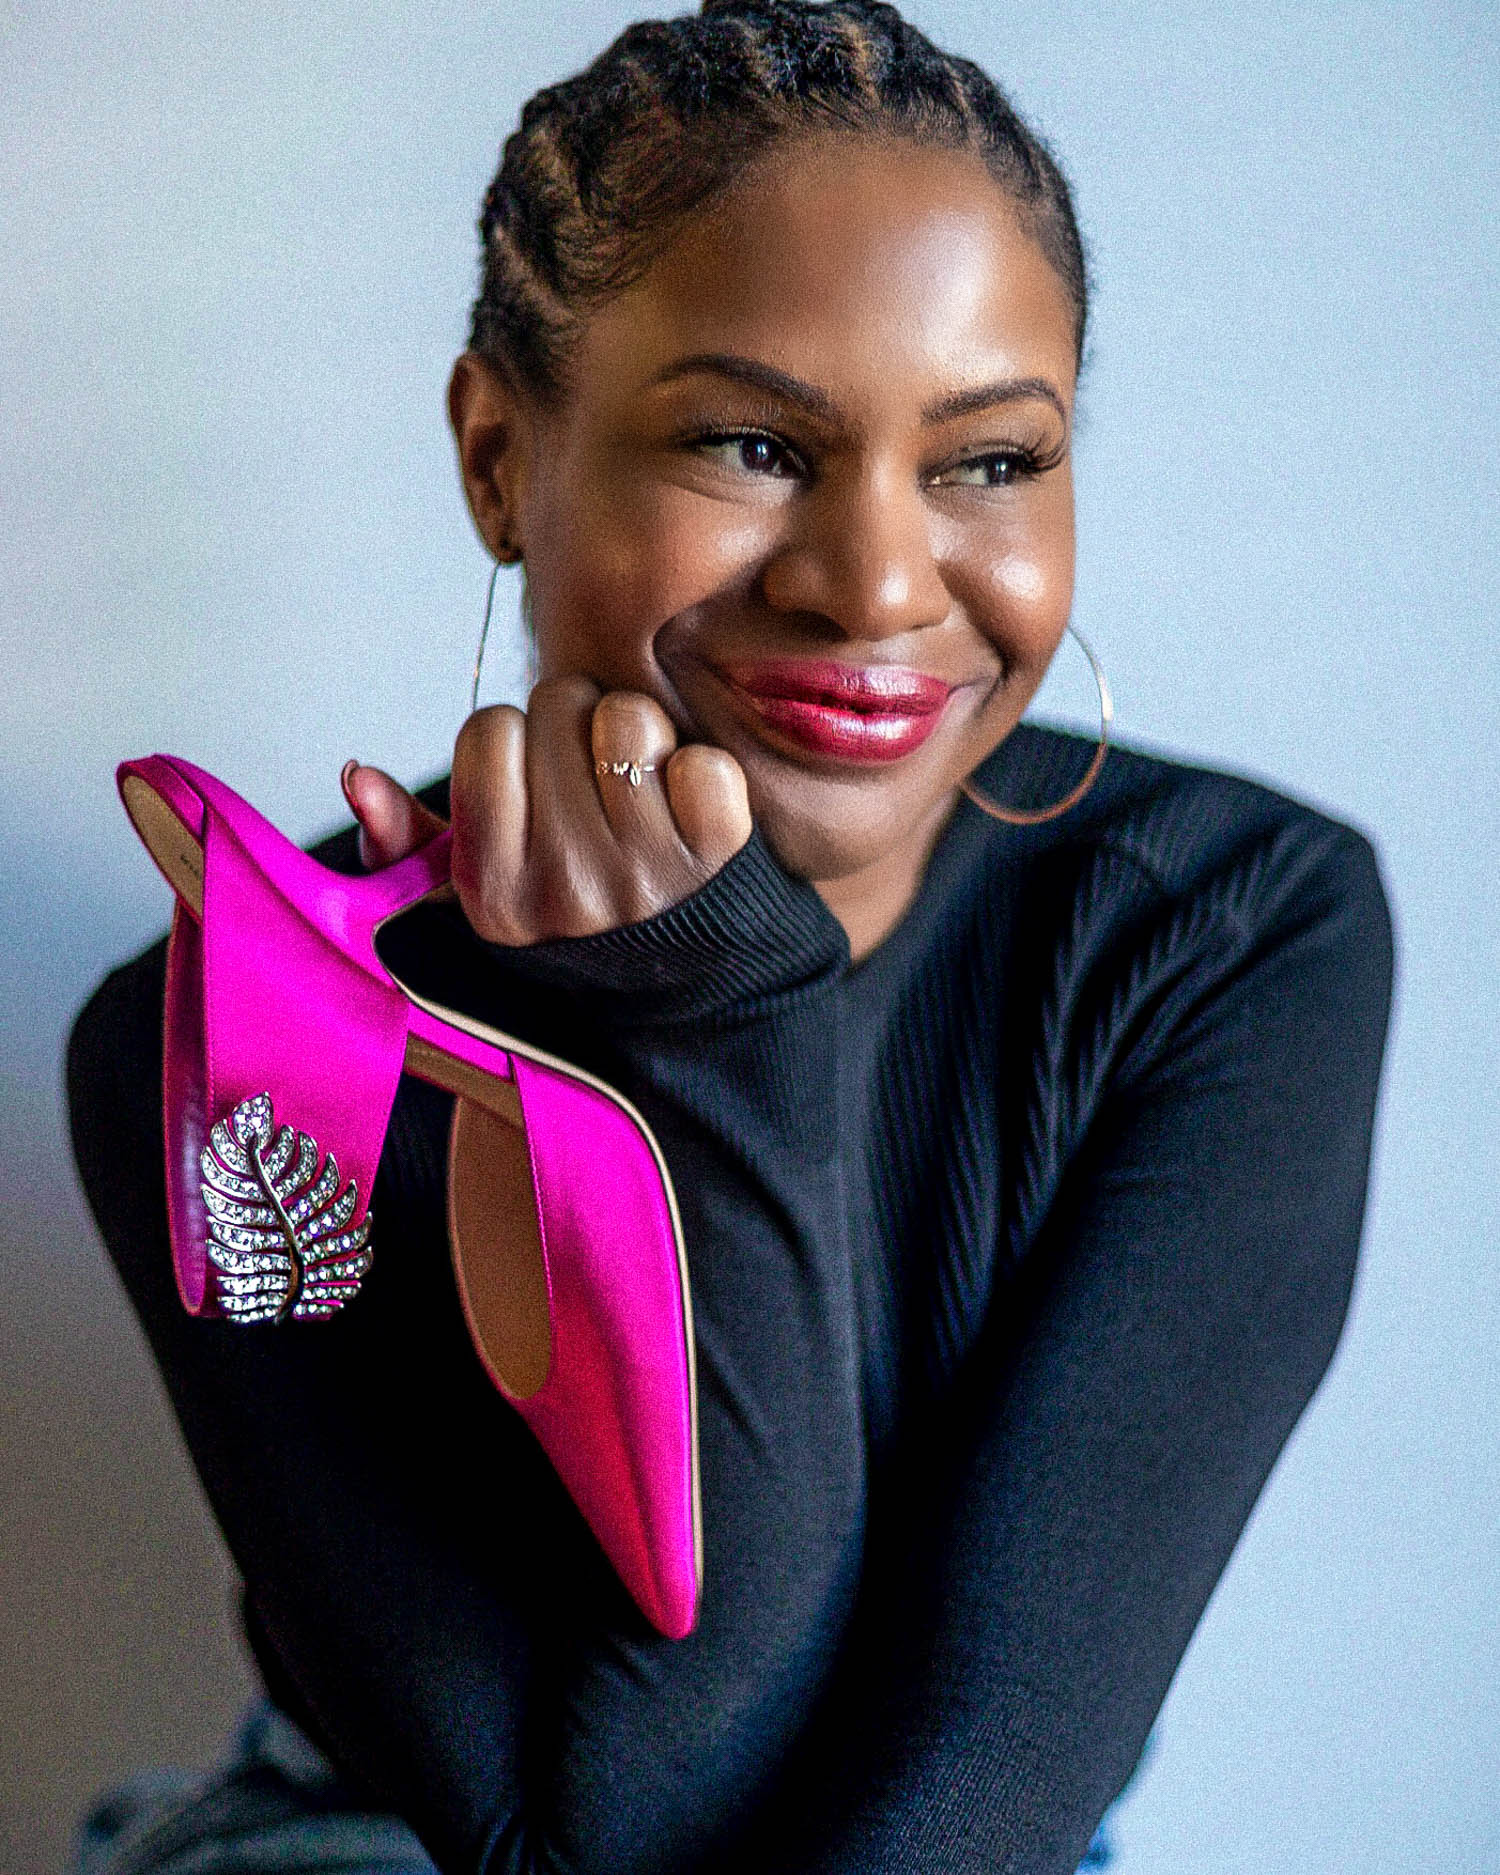 atlanta blogger unboxes nicholas kirkwood shoes, shoe unboxing, nicholas kirkwood shoe unboxing, try-on video, what you should know before buying nicholas kirkwood shooes, nicholas kirkwood mules, spring shoe trends,